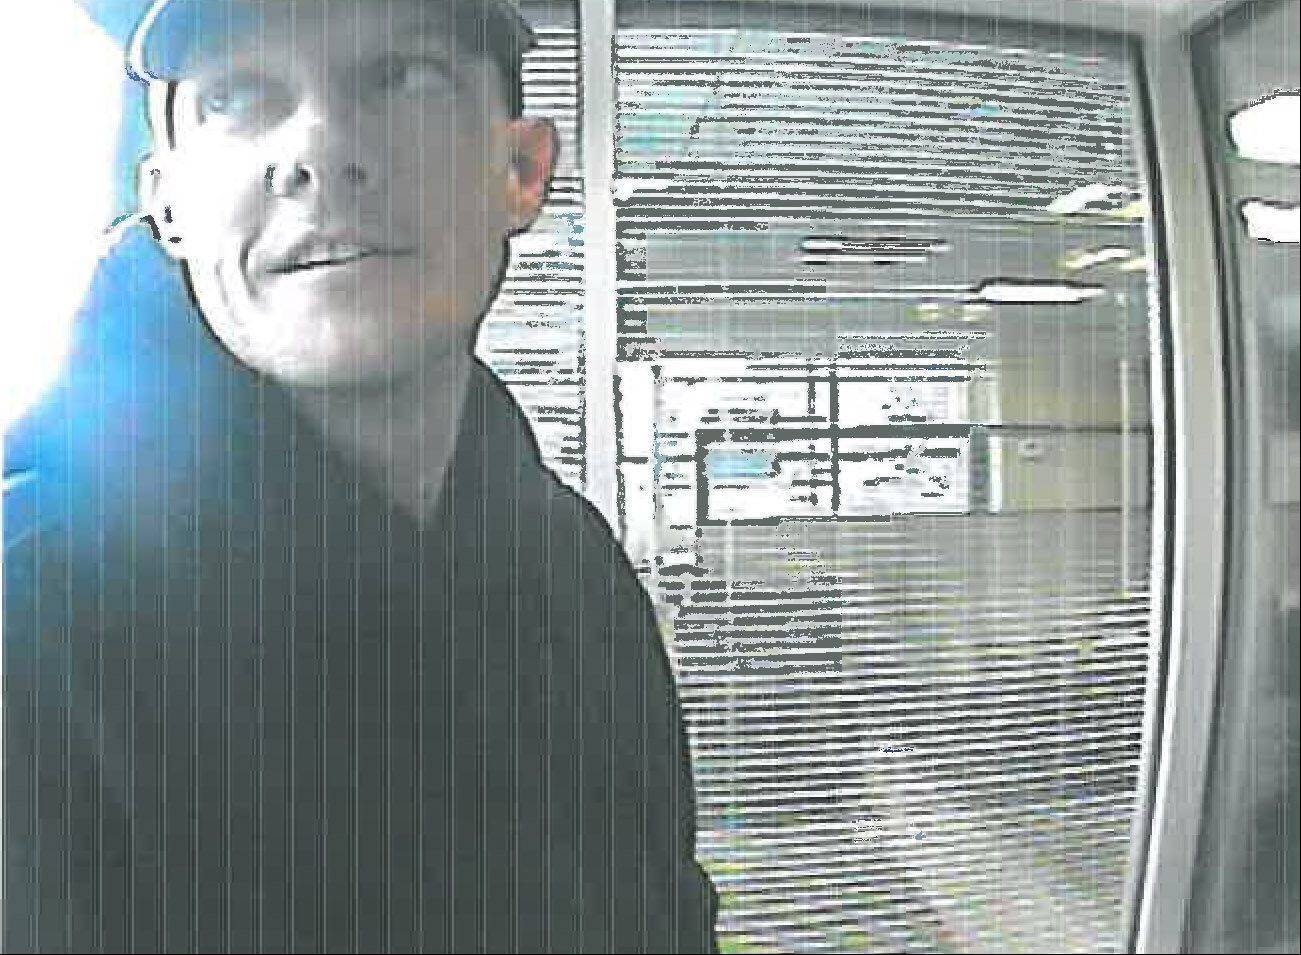 This man is a suspect in a bank robbery that occurred at a TCF Bank in Rolling Meadows on Oct. 26. Rolling Meadows police are asking for the public's help in identifying the man.